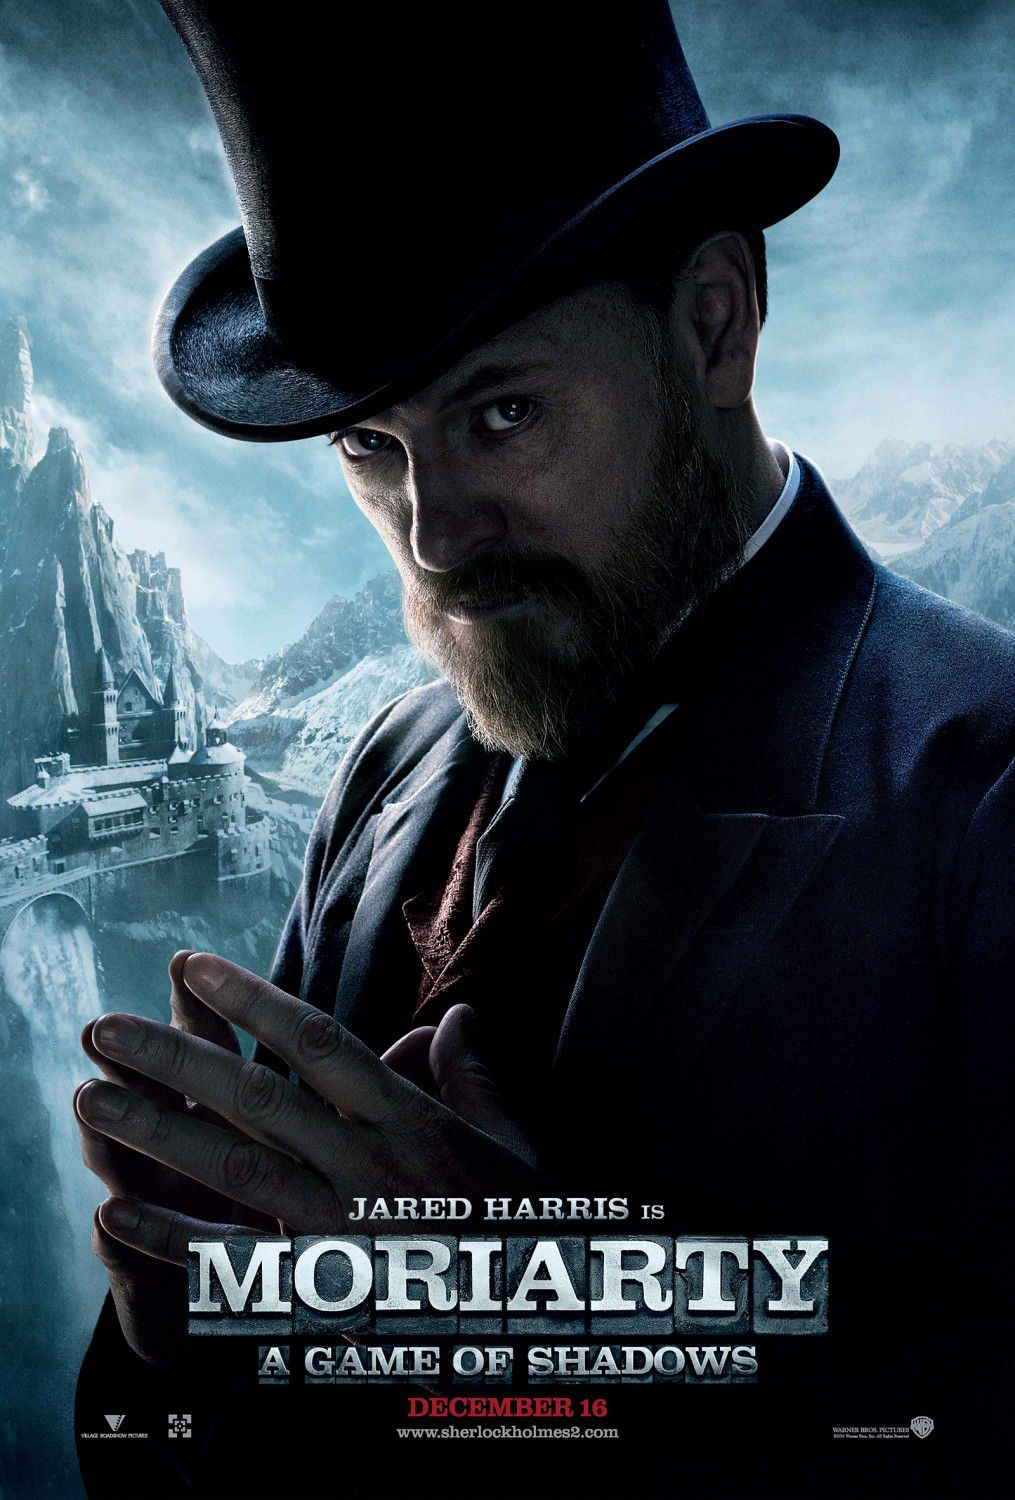 Sherlock Holmes a Game of Shadows - Gioco di Ombre (2011) - Jared Harris